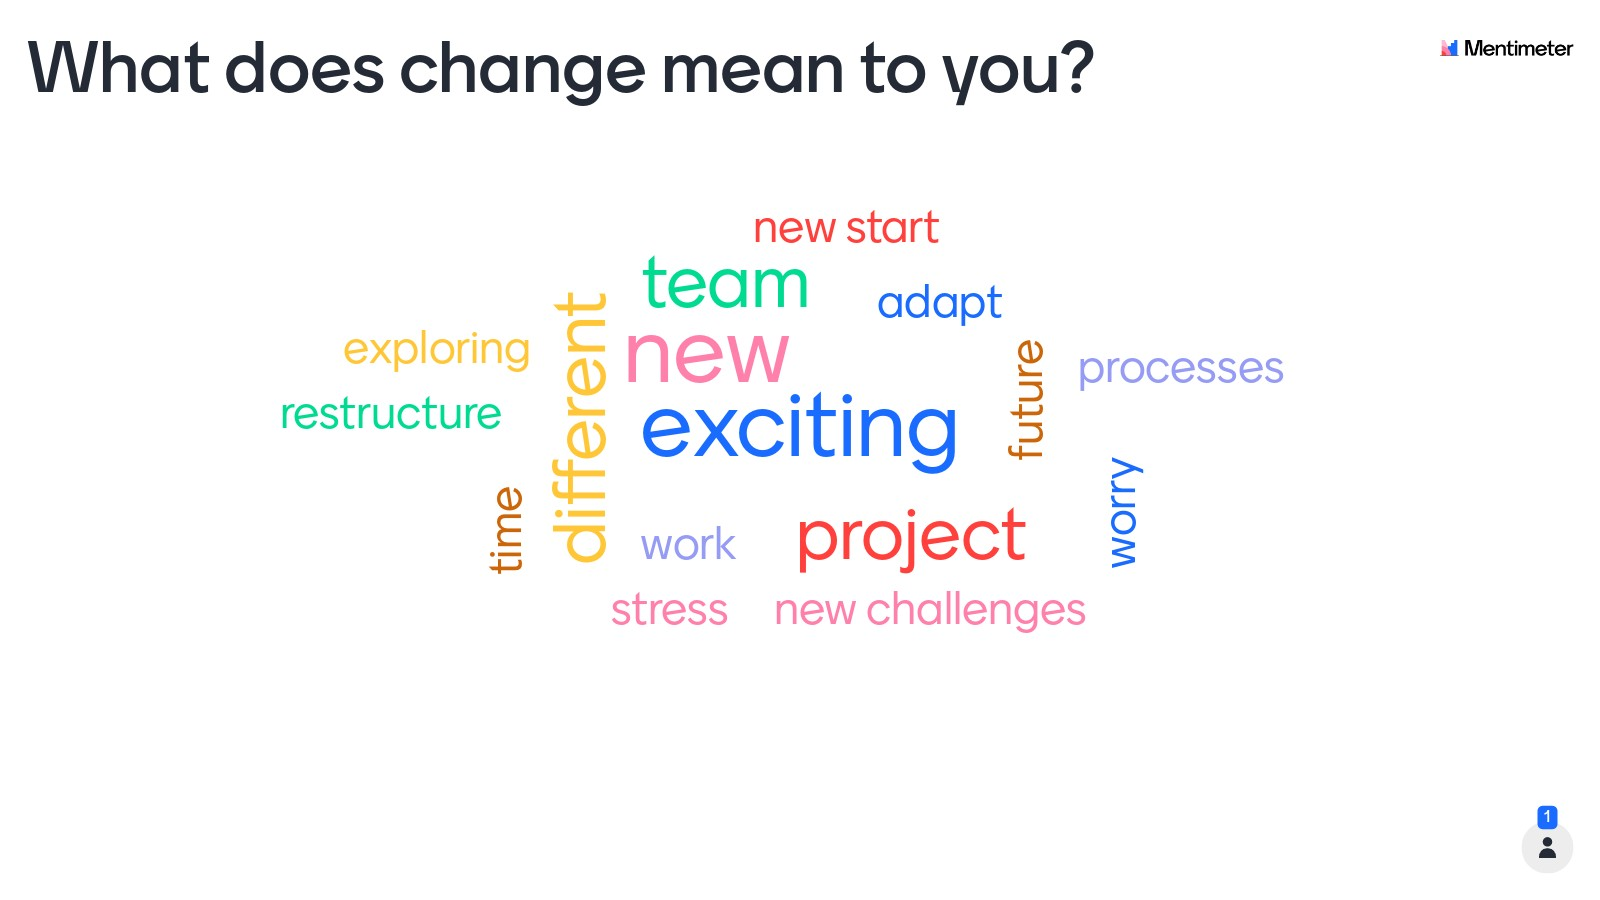 What does change mean to you?